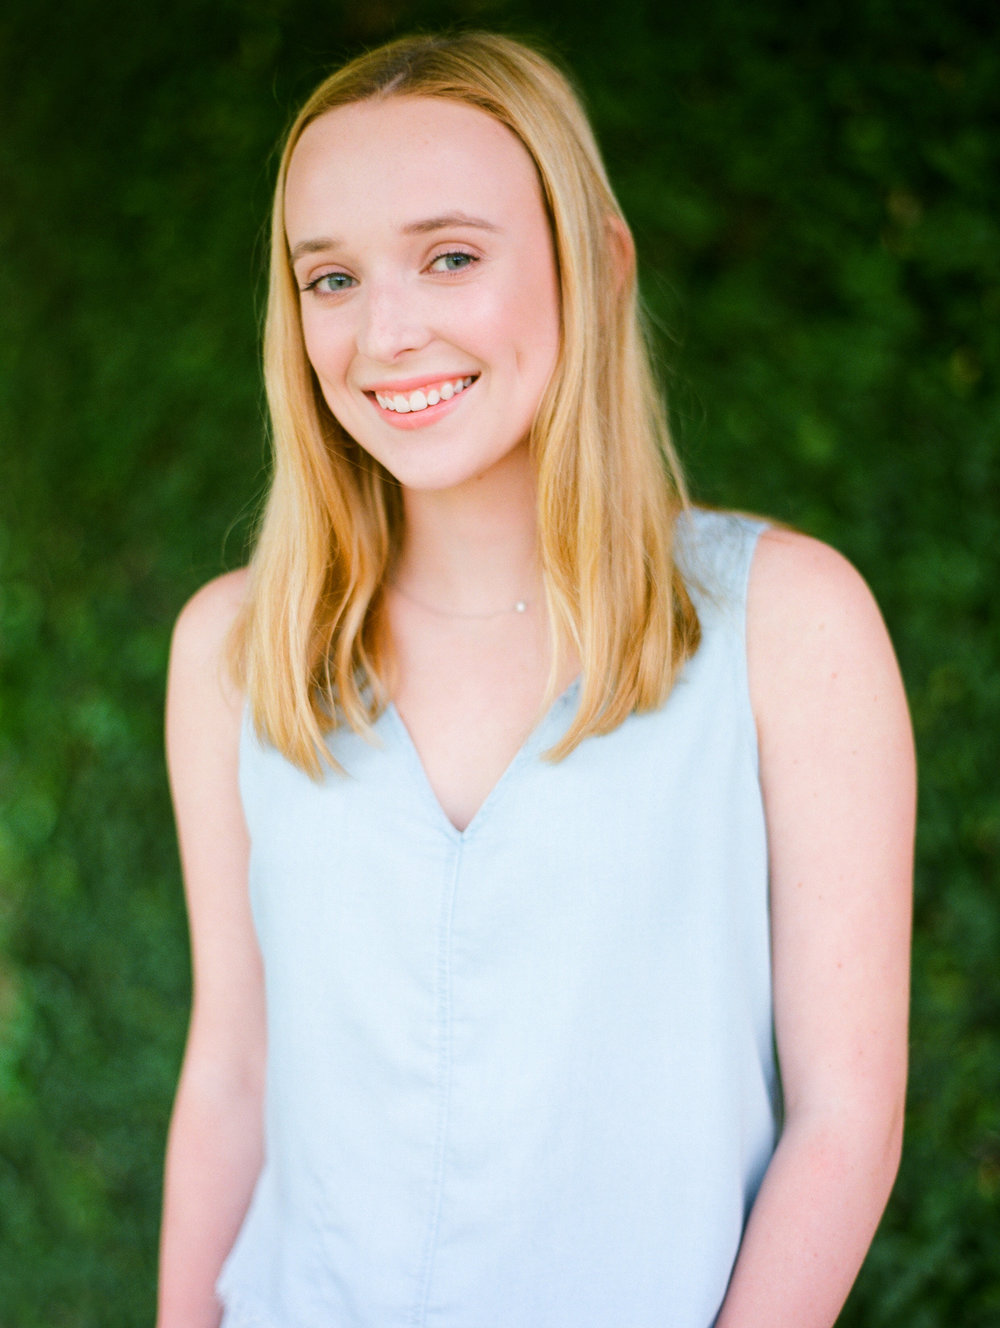 0109_Houston-Senior-Photographer-Episcopal-High-School.jpg